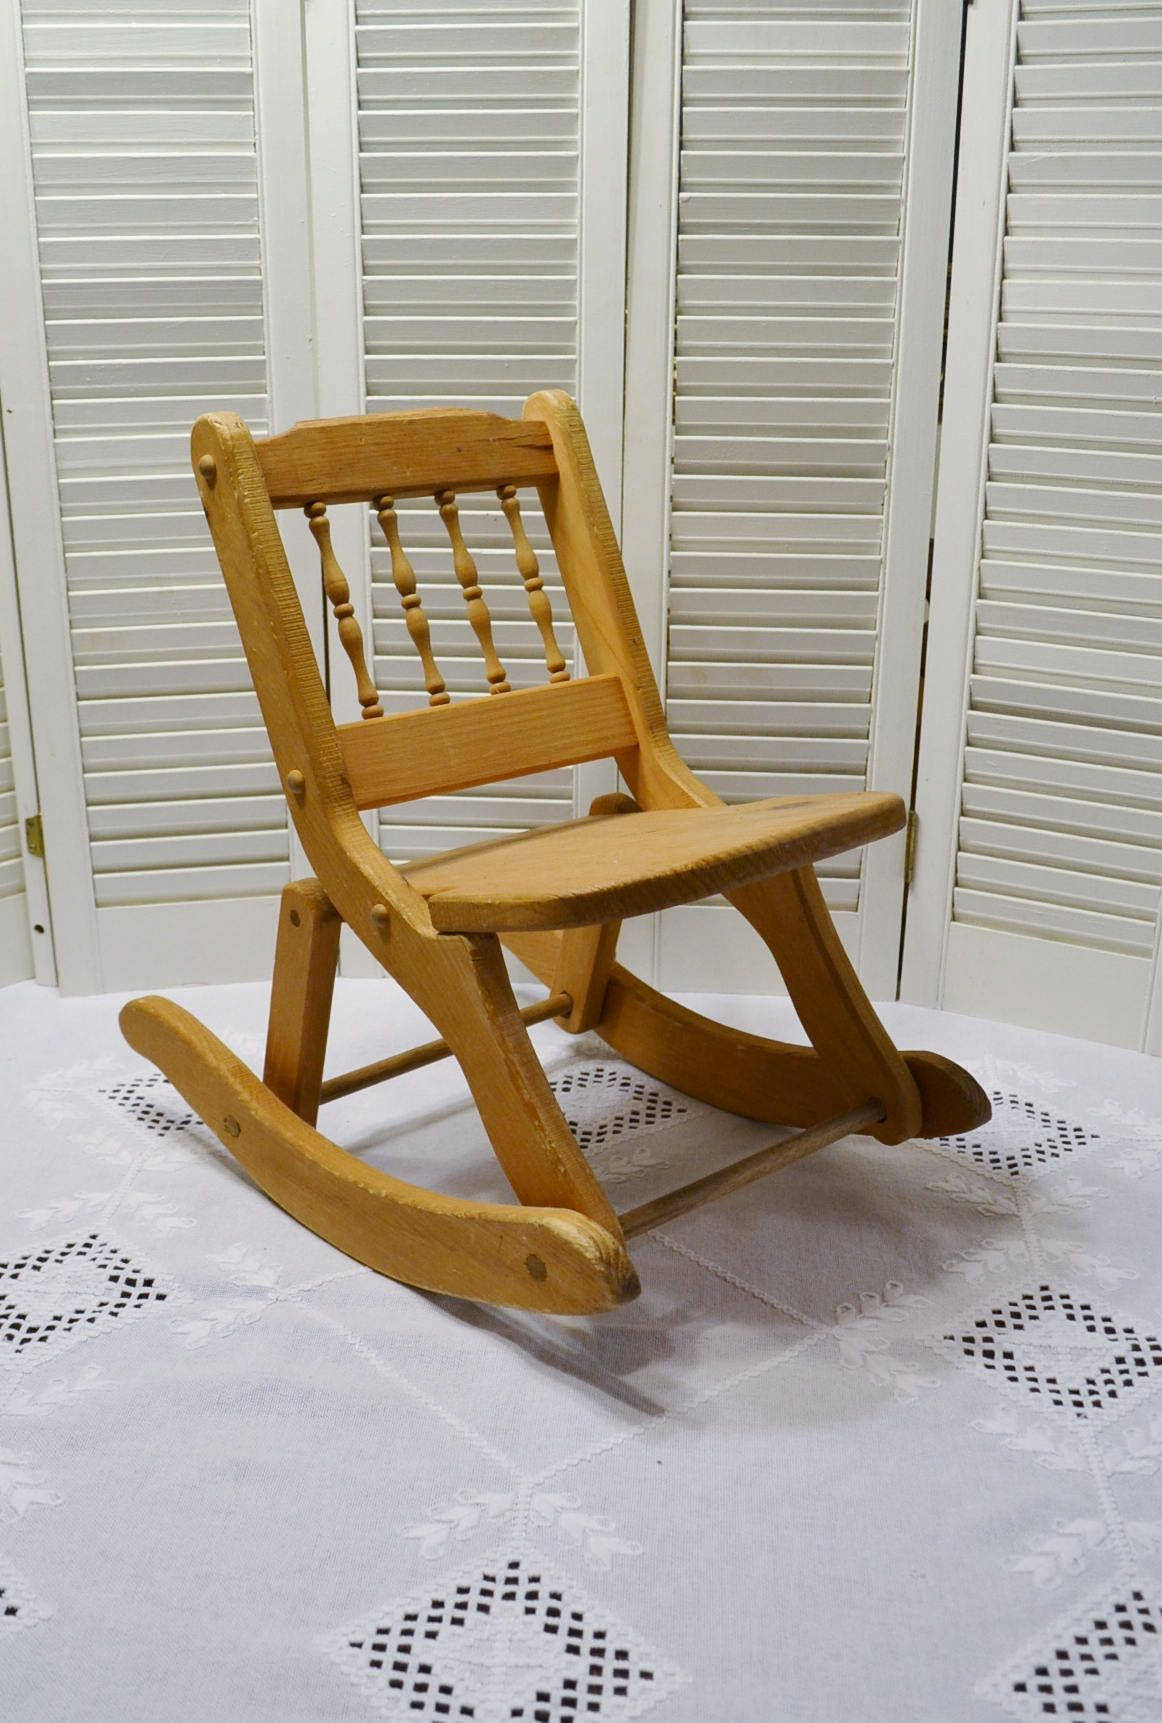 Vintage Childs Wooden Rocking Chair Folding Wood Rocker Childrens